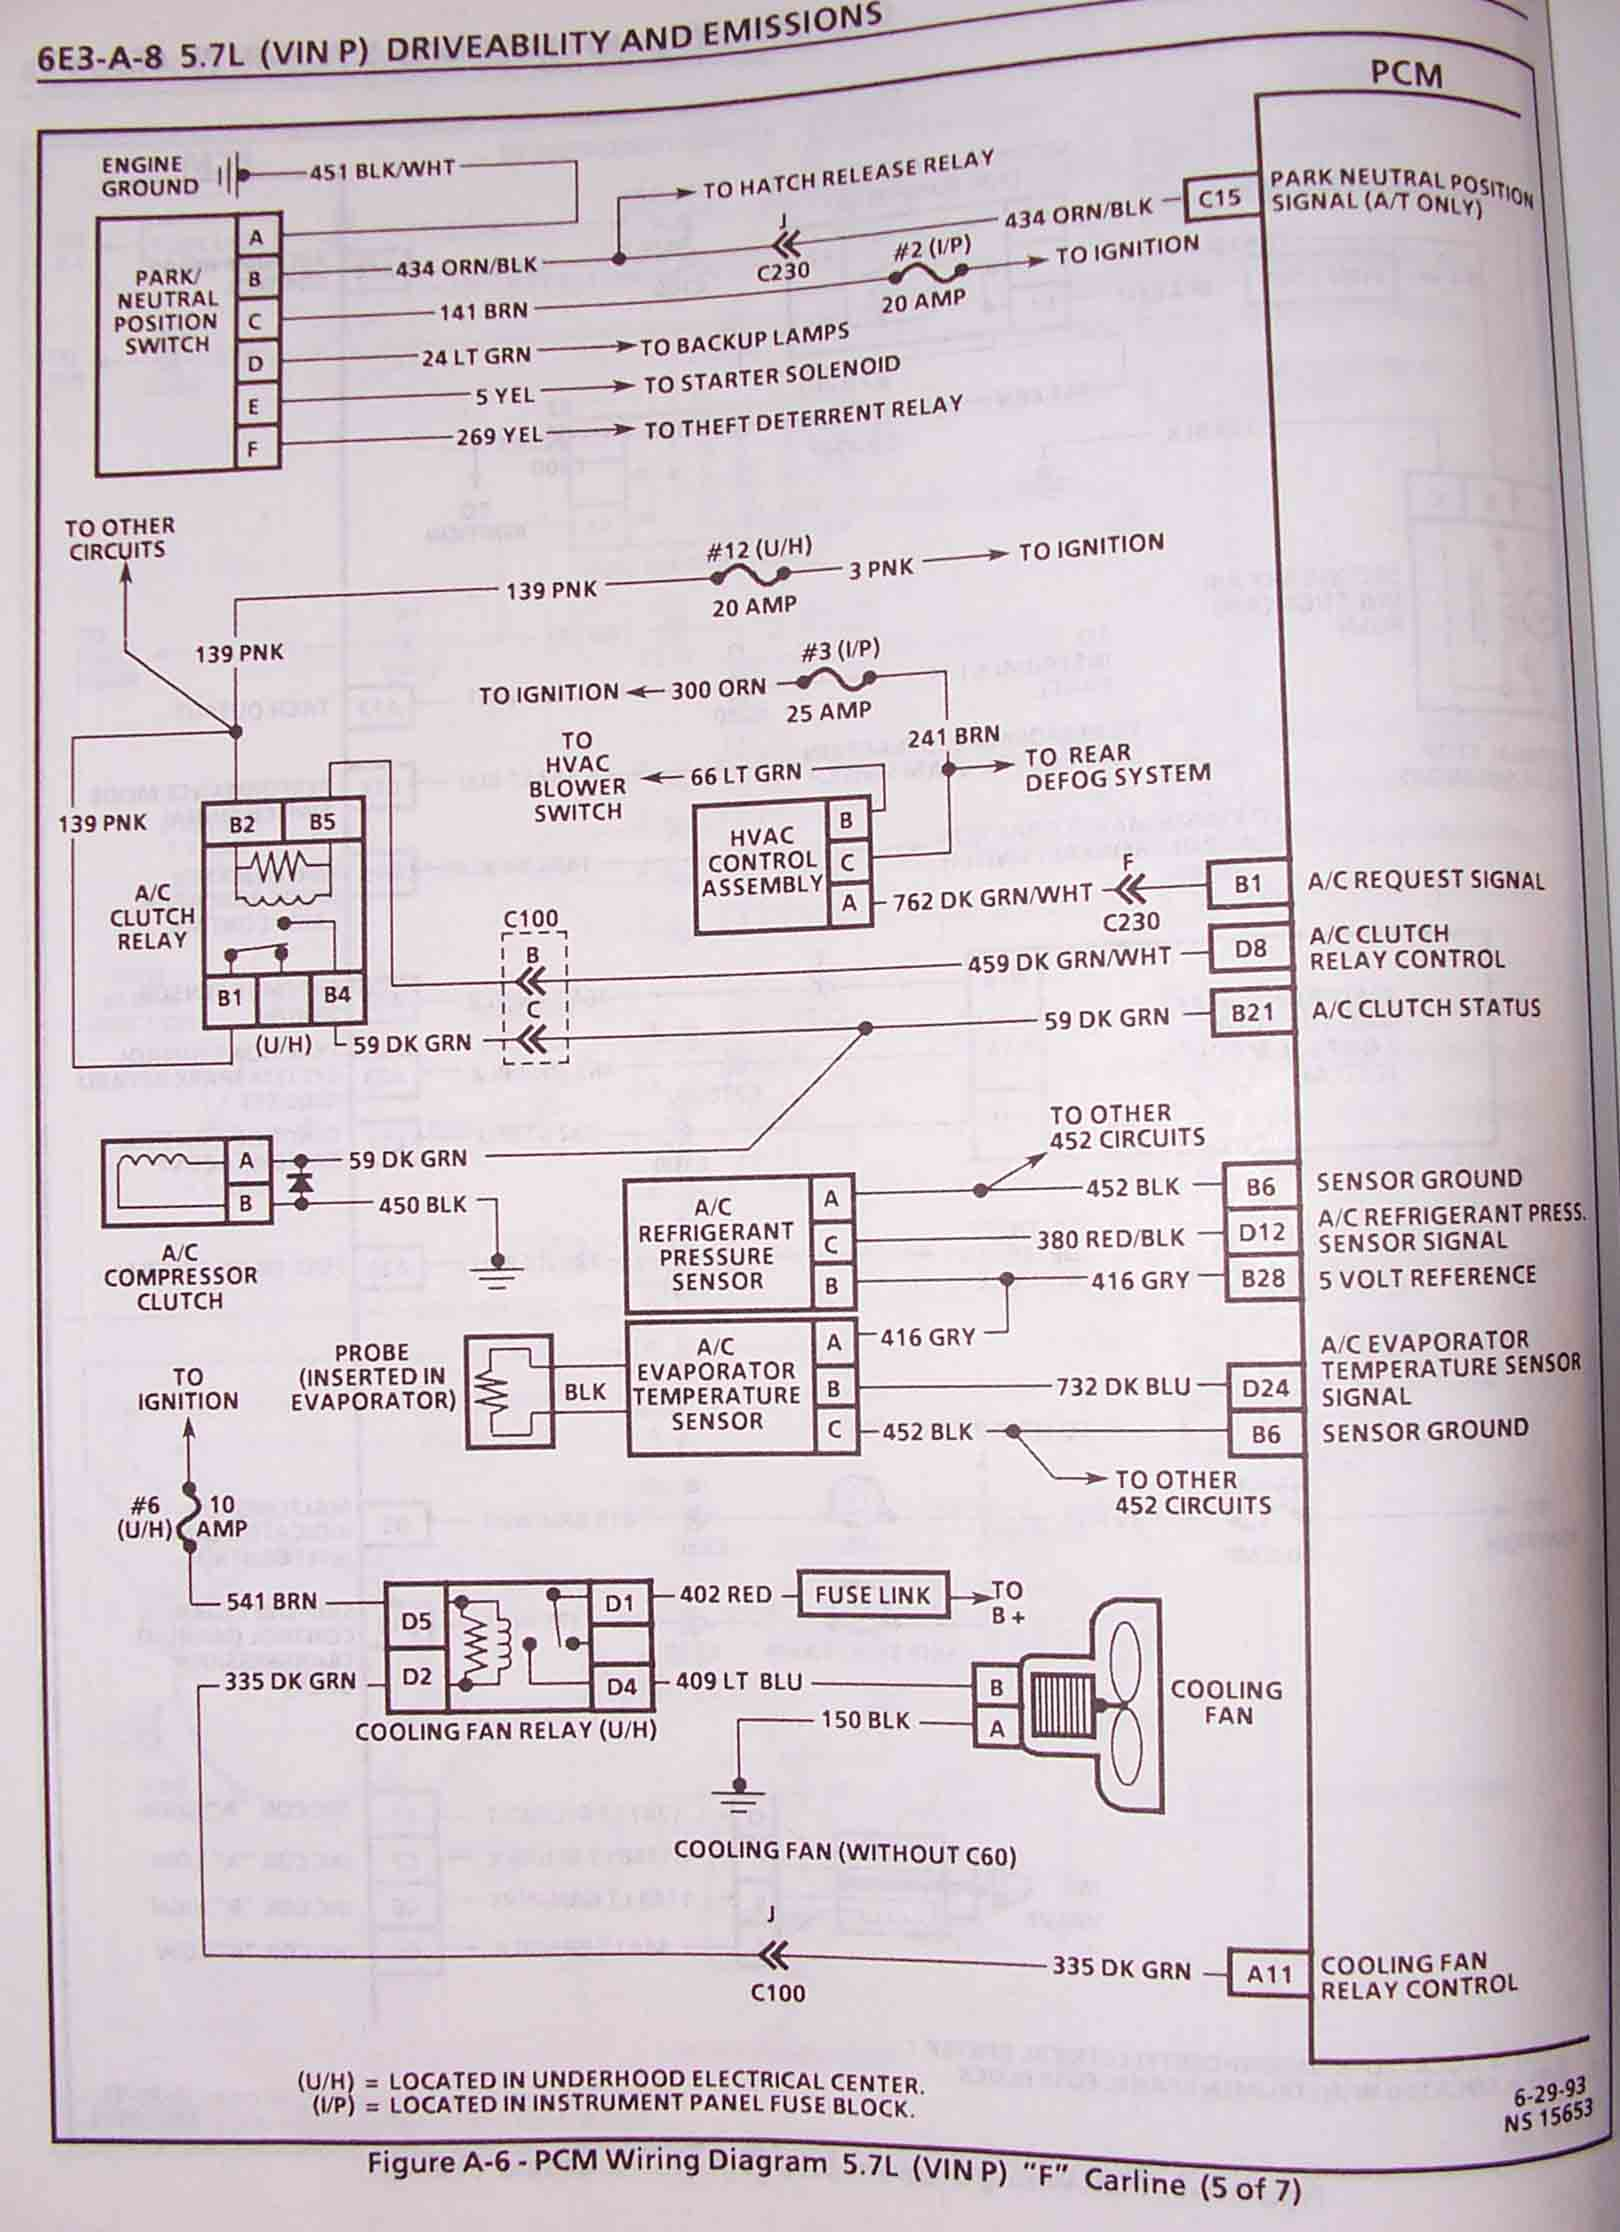 95 Chevy Camaro Wiring Diagram Starting Know About 4pdt 1995 F Body Wire Harness Schematics Rh Lt1swap Com